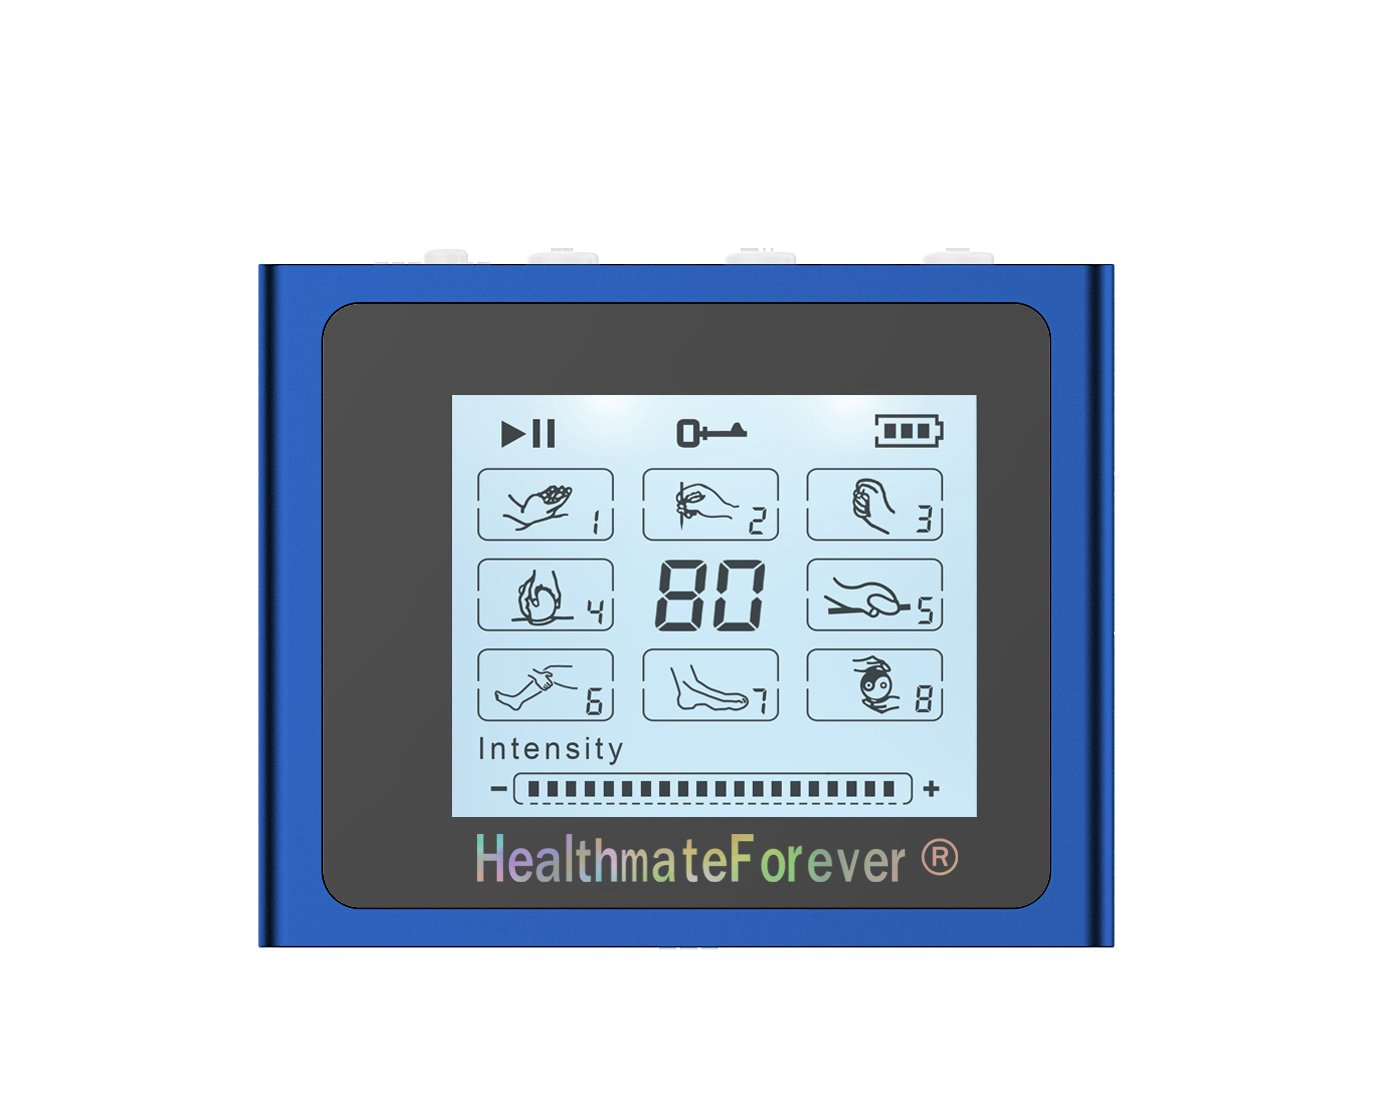 TS8 HealthmateForever TENS Unit Electrical Muscle Stimulator Blue